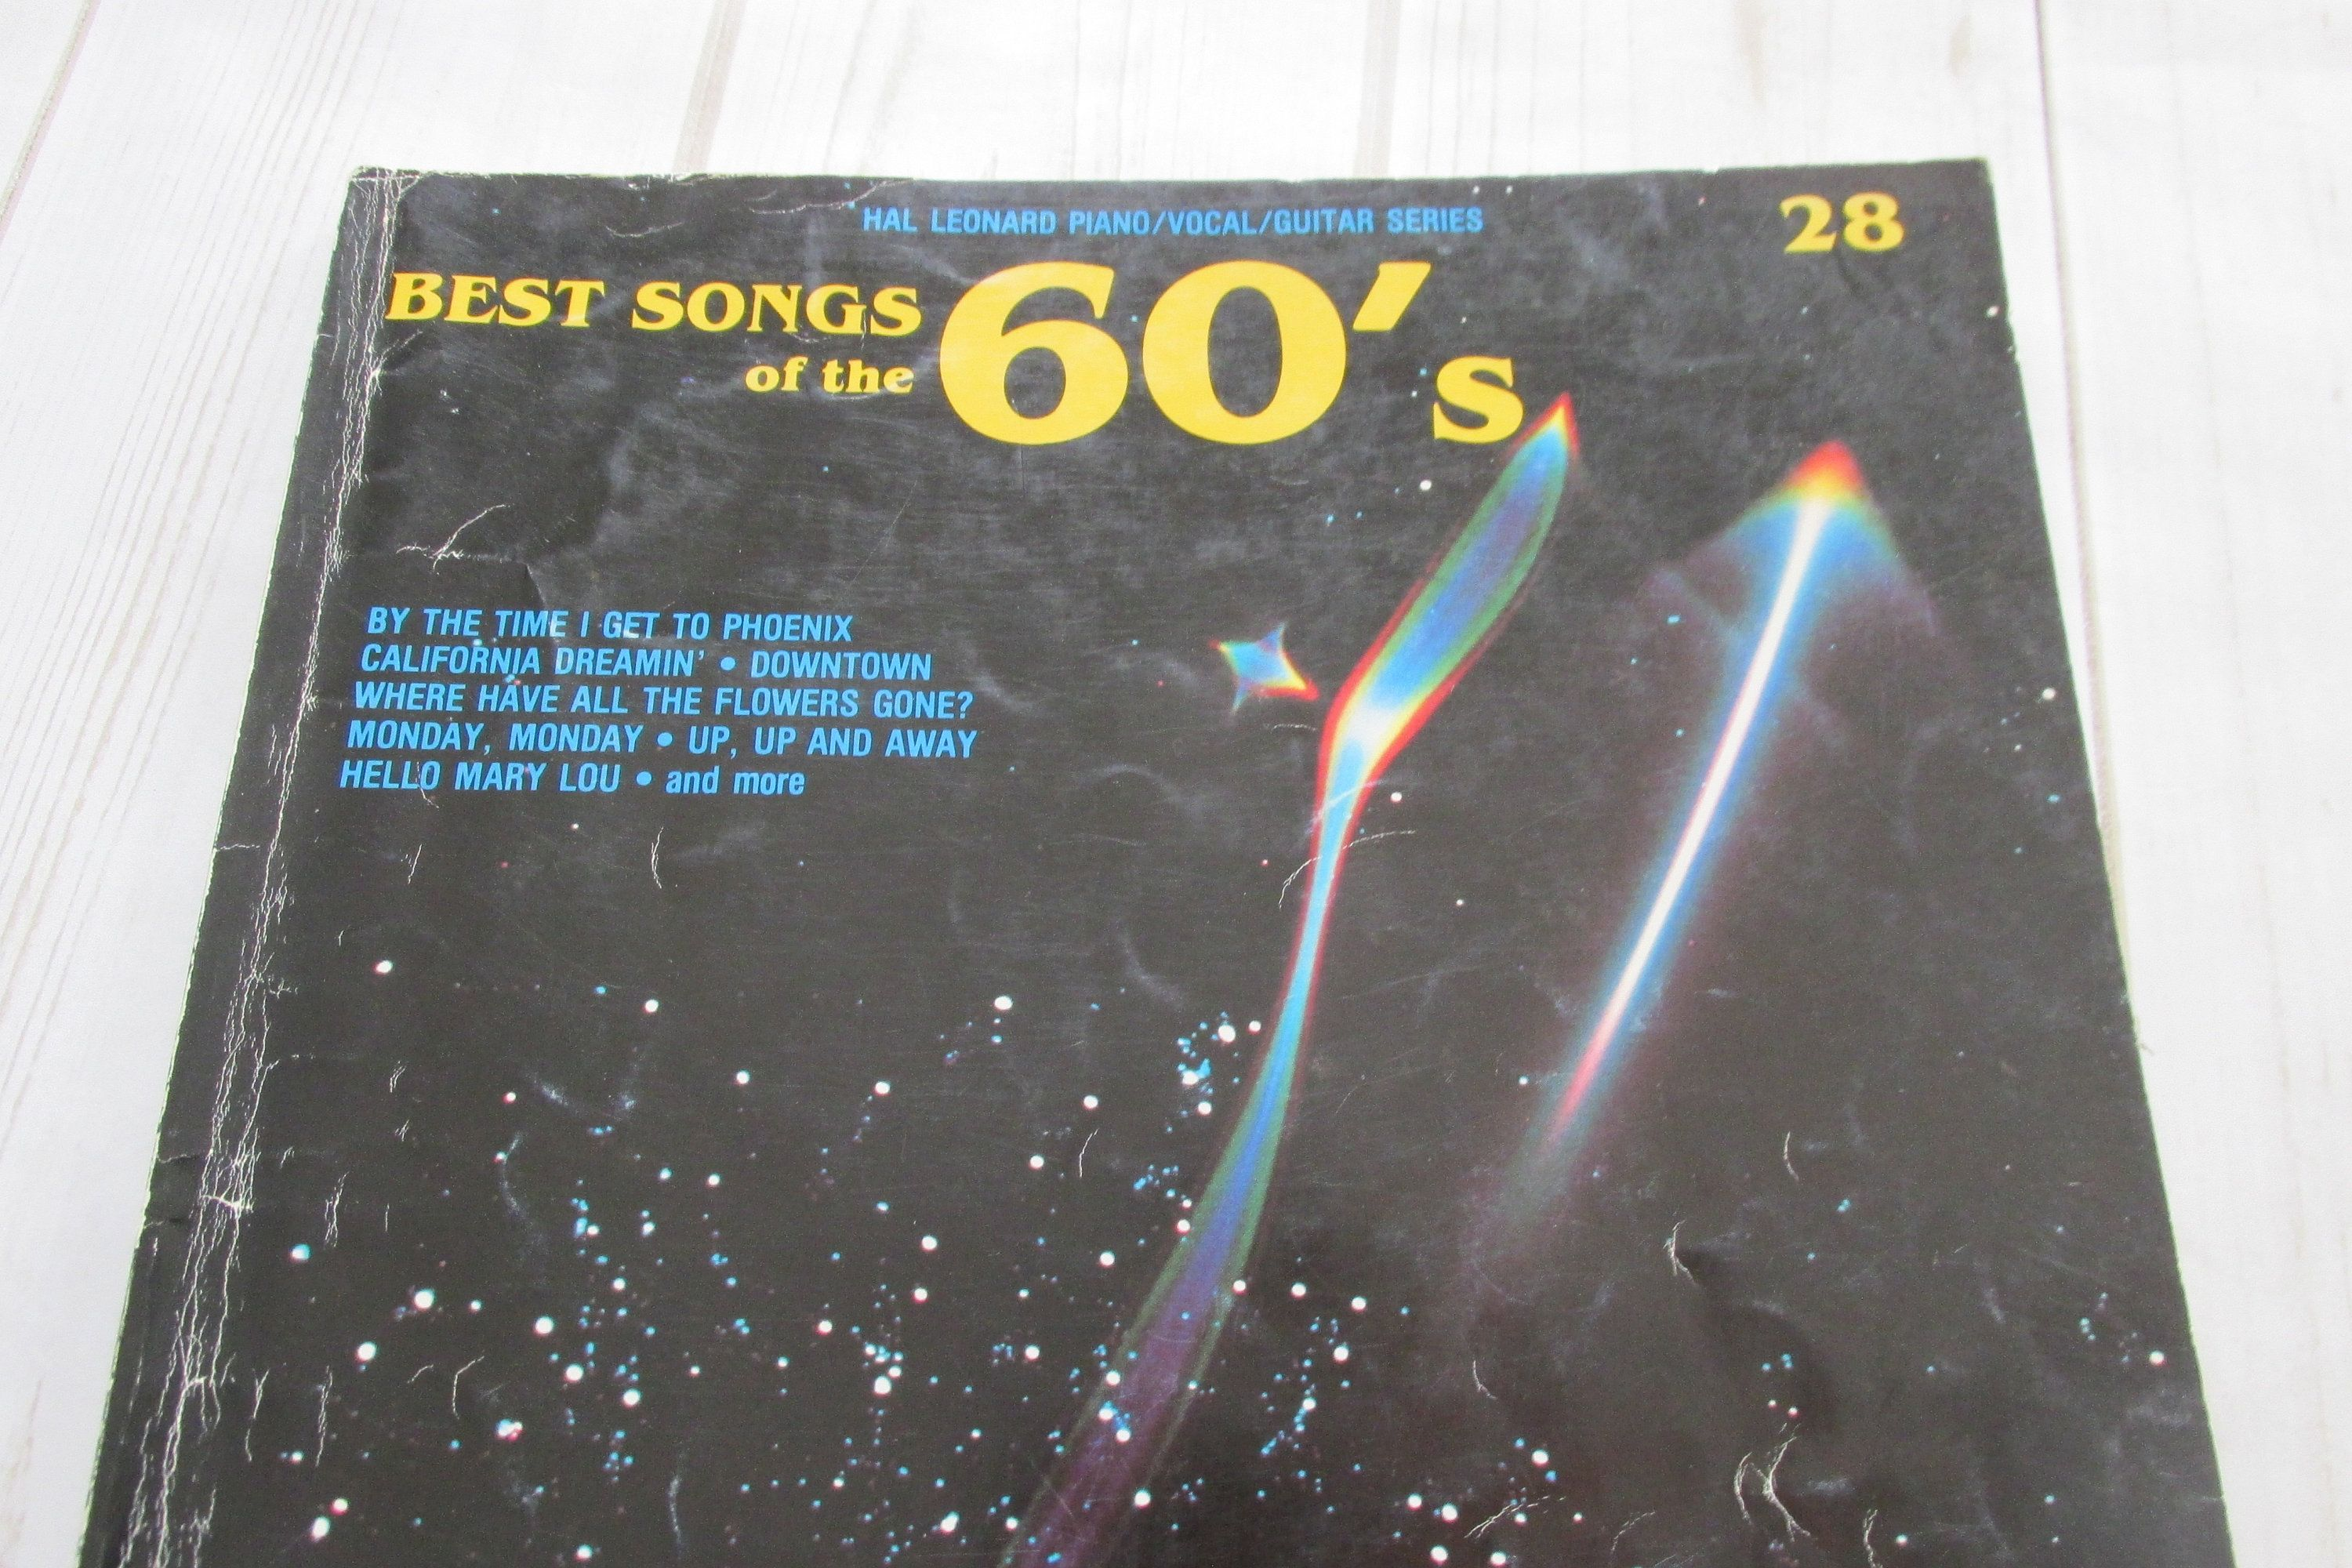 Best Songs of the 60s Sheet Music Song Book, Vintage Gift